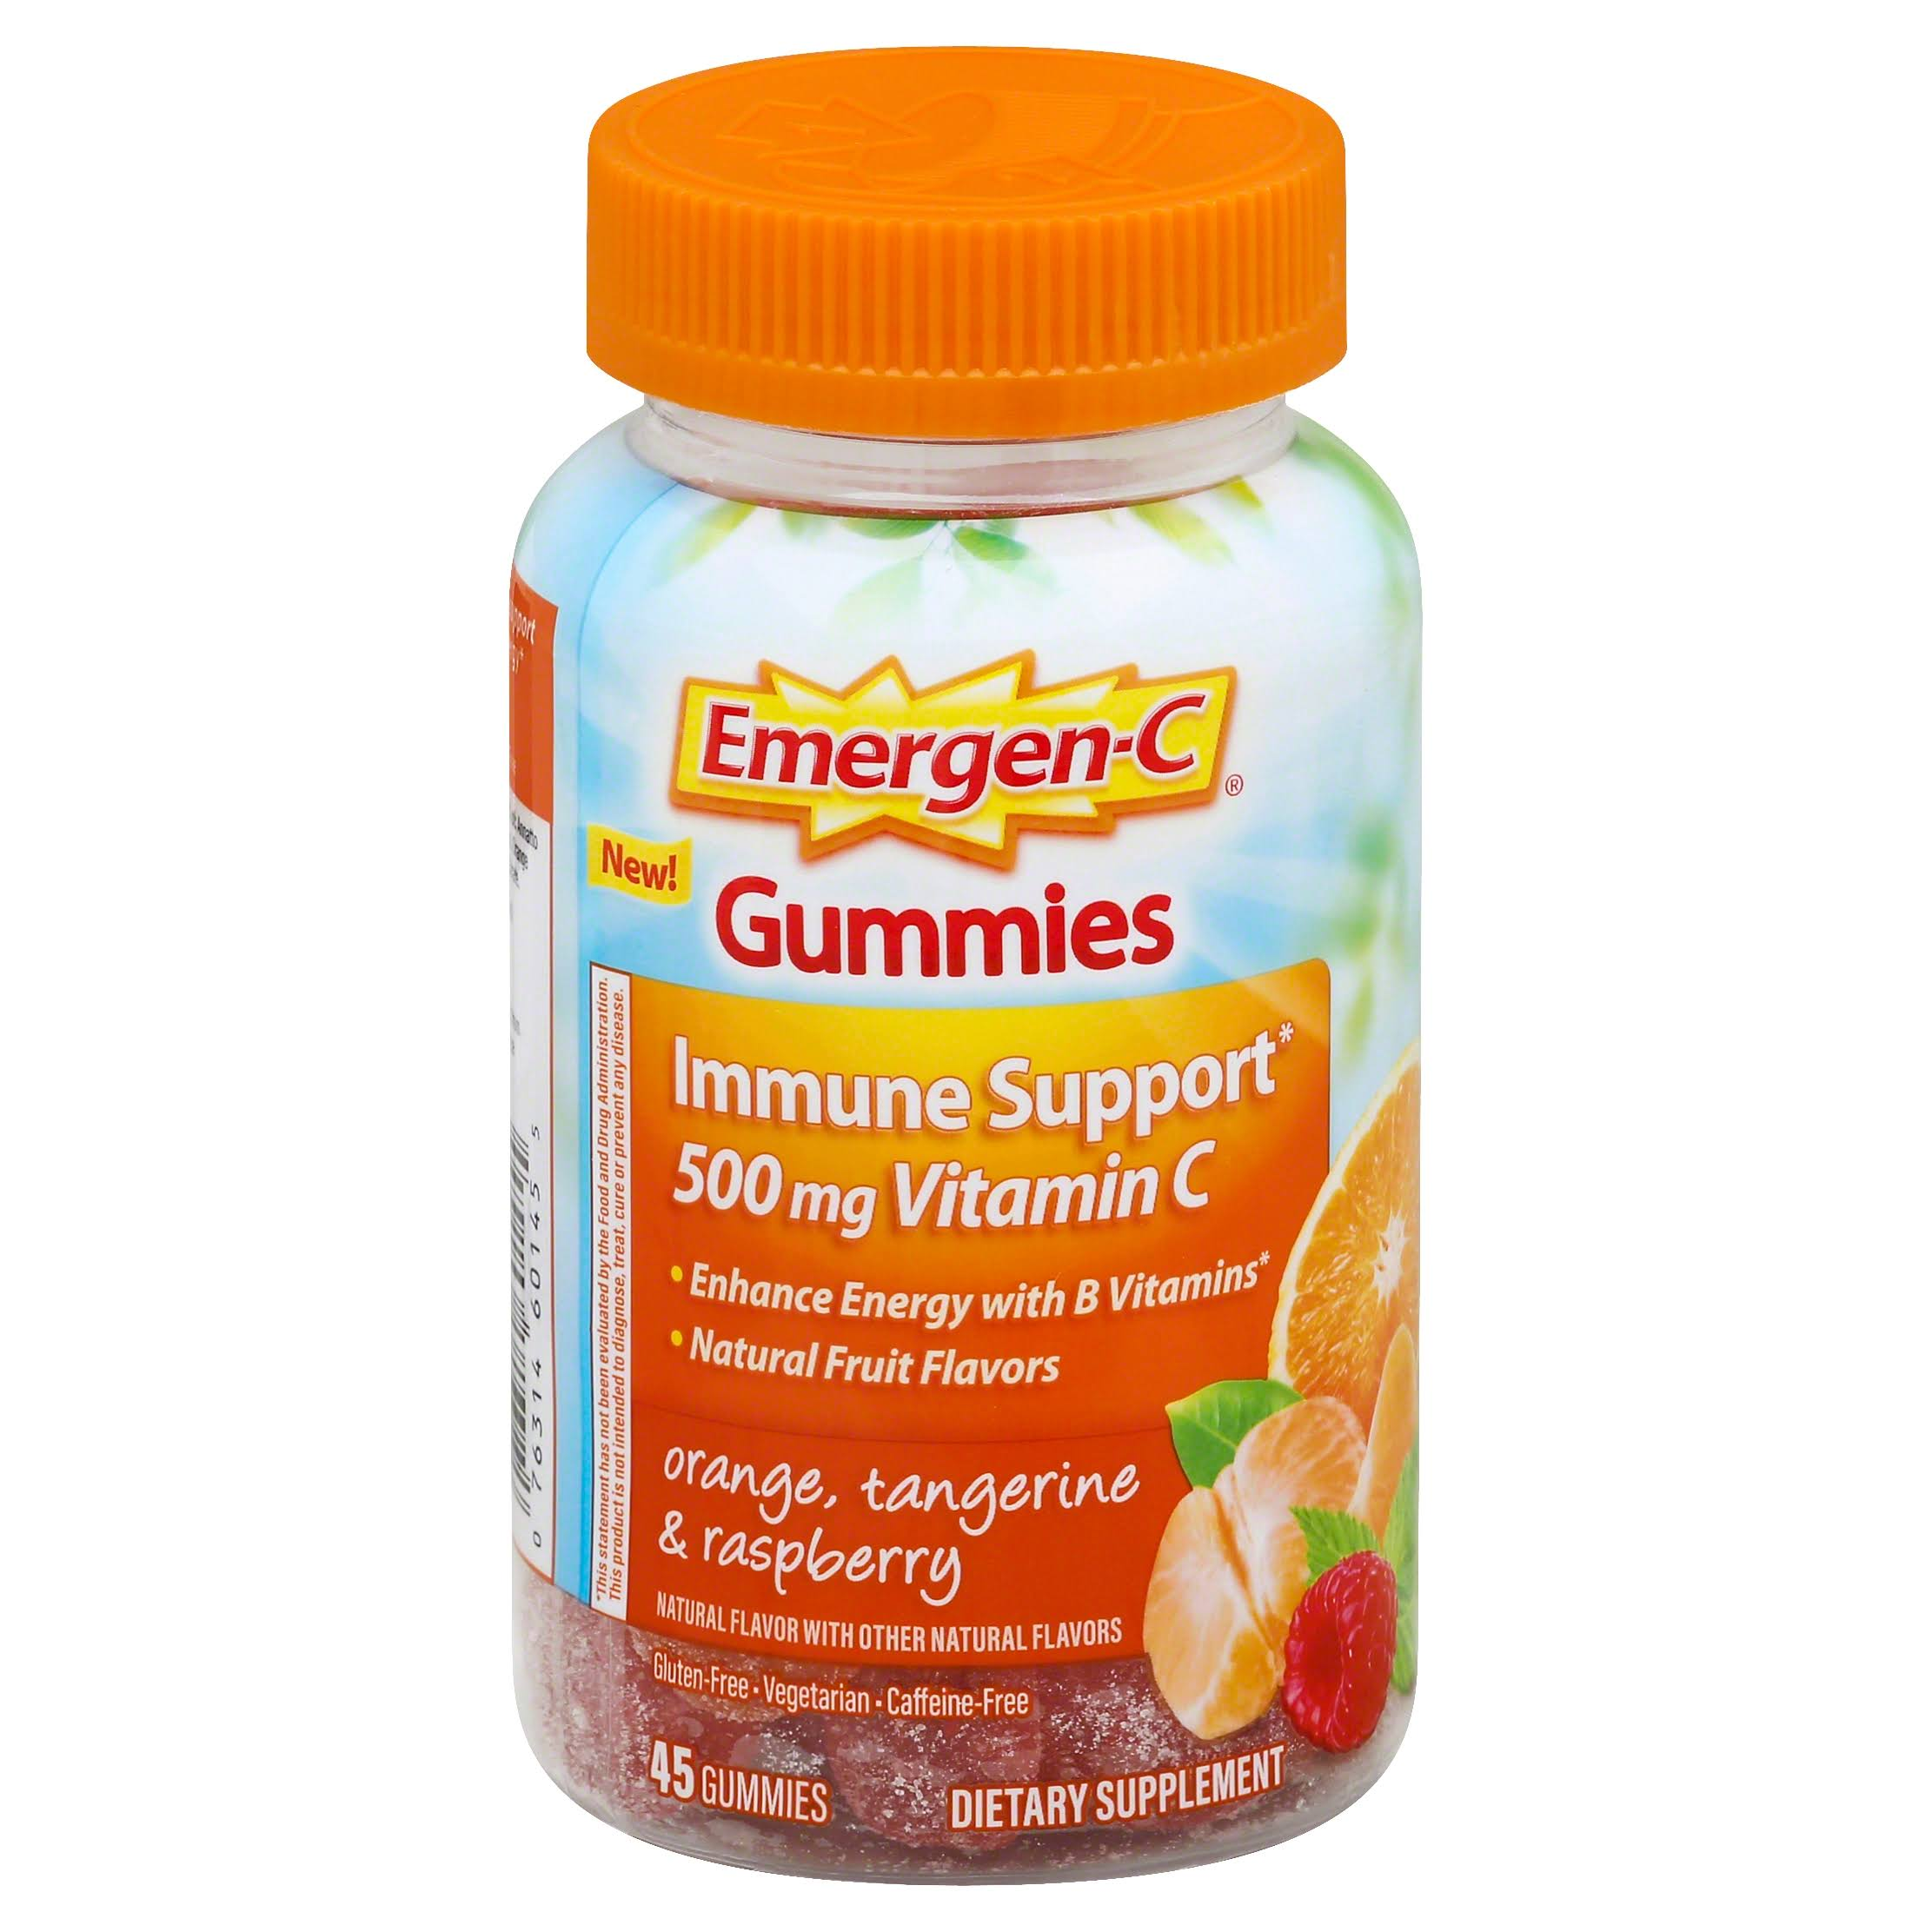 Emergen-C Gummies Dietary Supplement - 500mg, 45ct